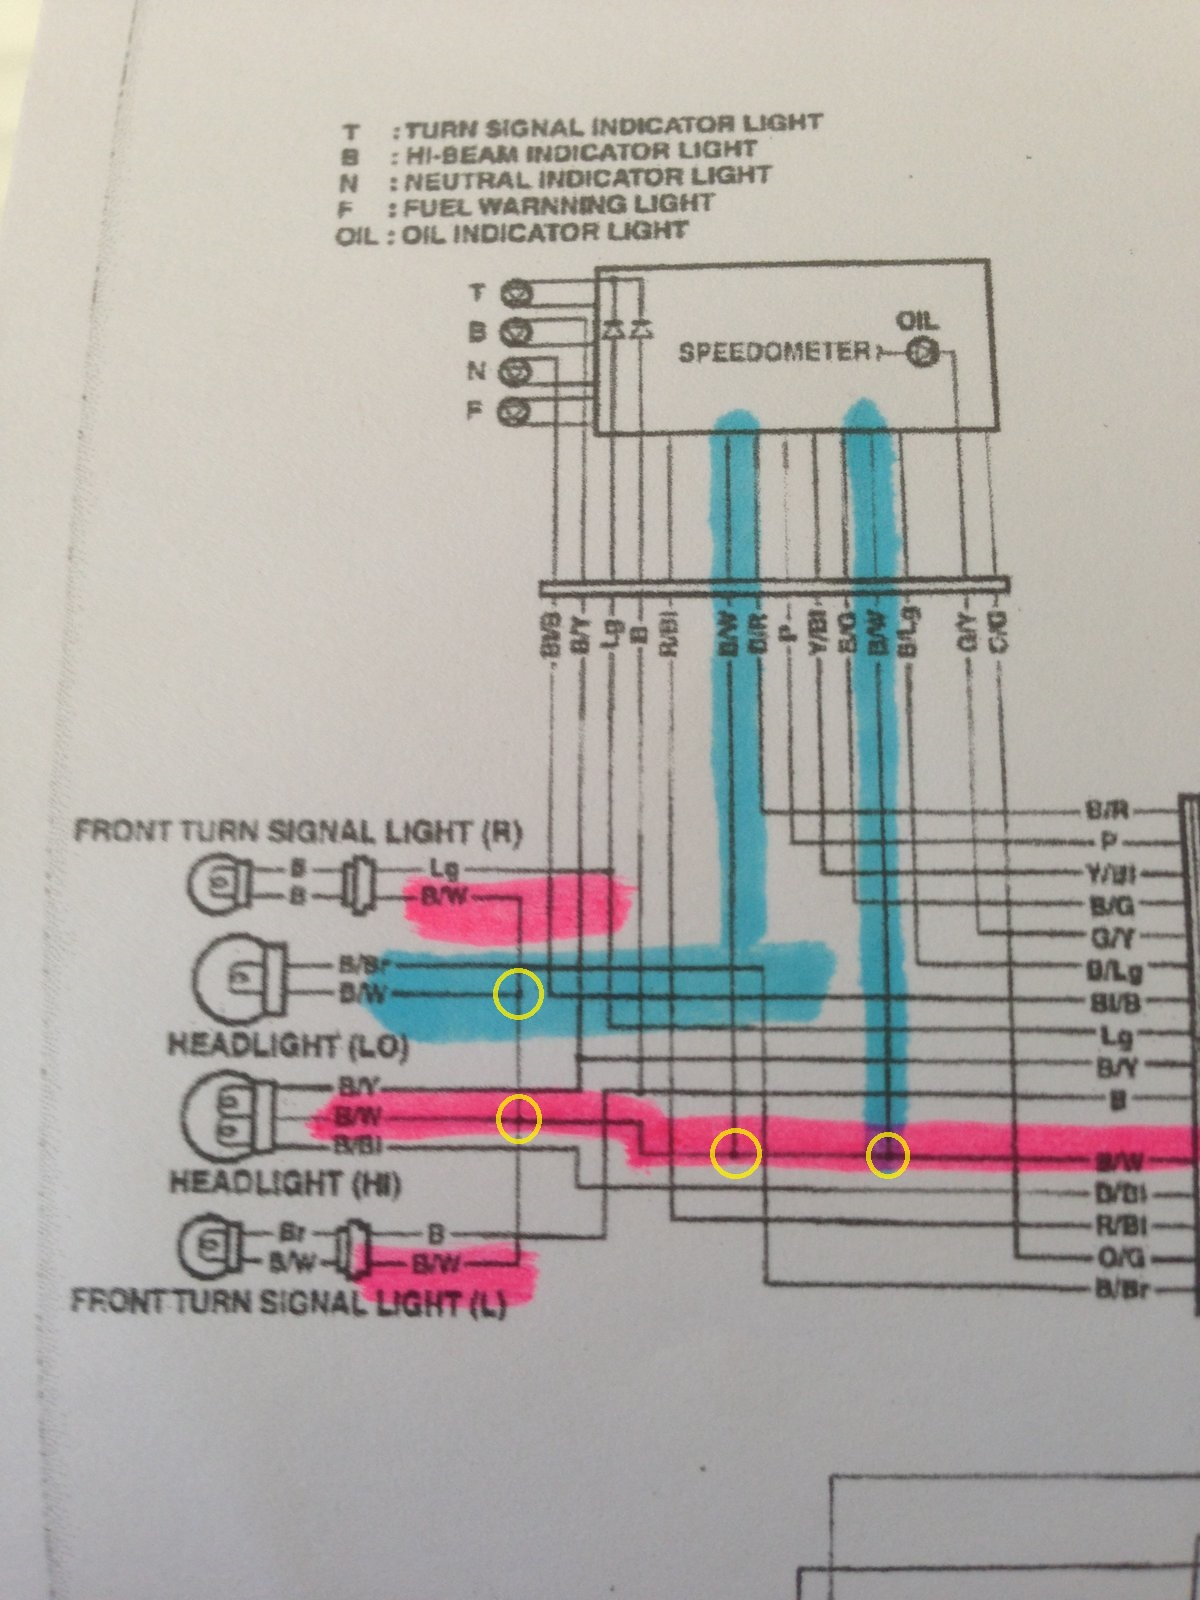 grounded schematic wiring diagram electrical question: redundant ground - 2005 gsxr600 ... #5